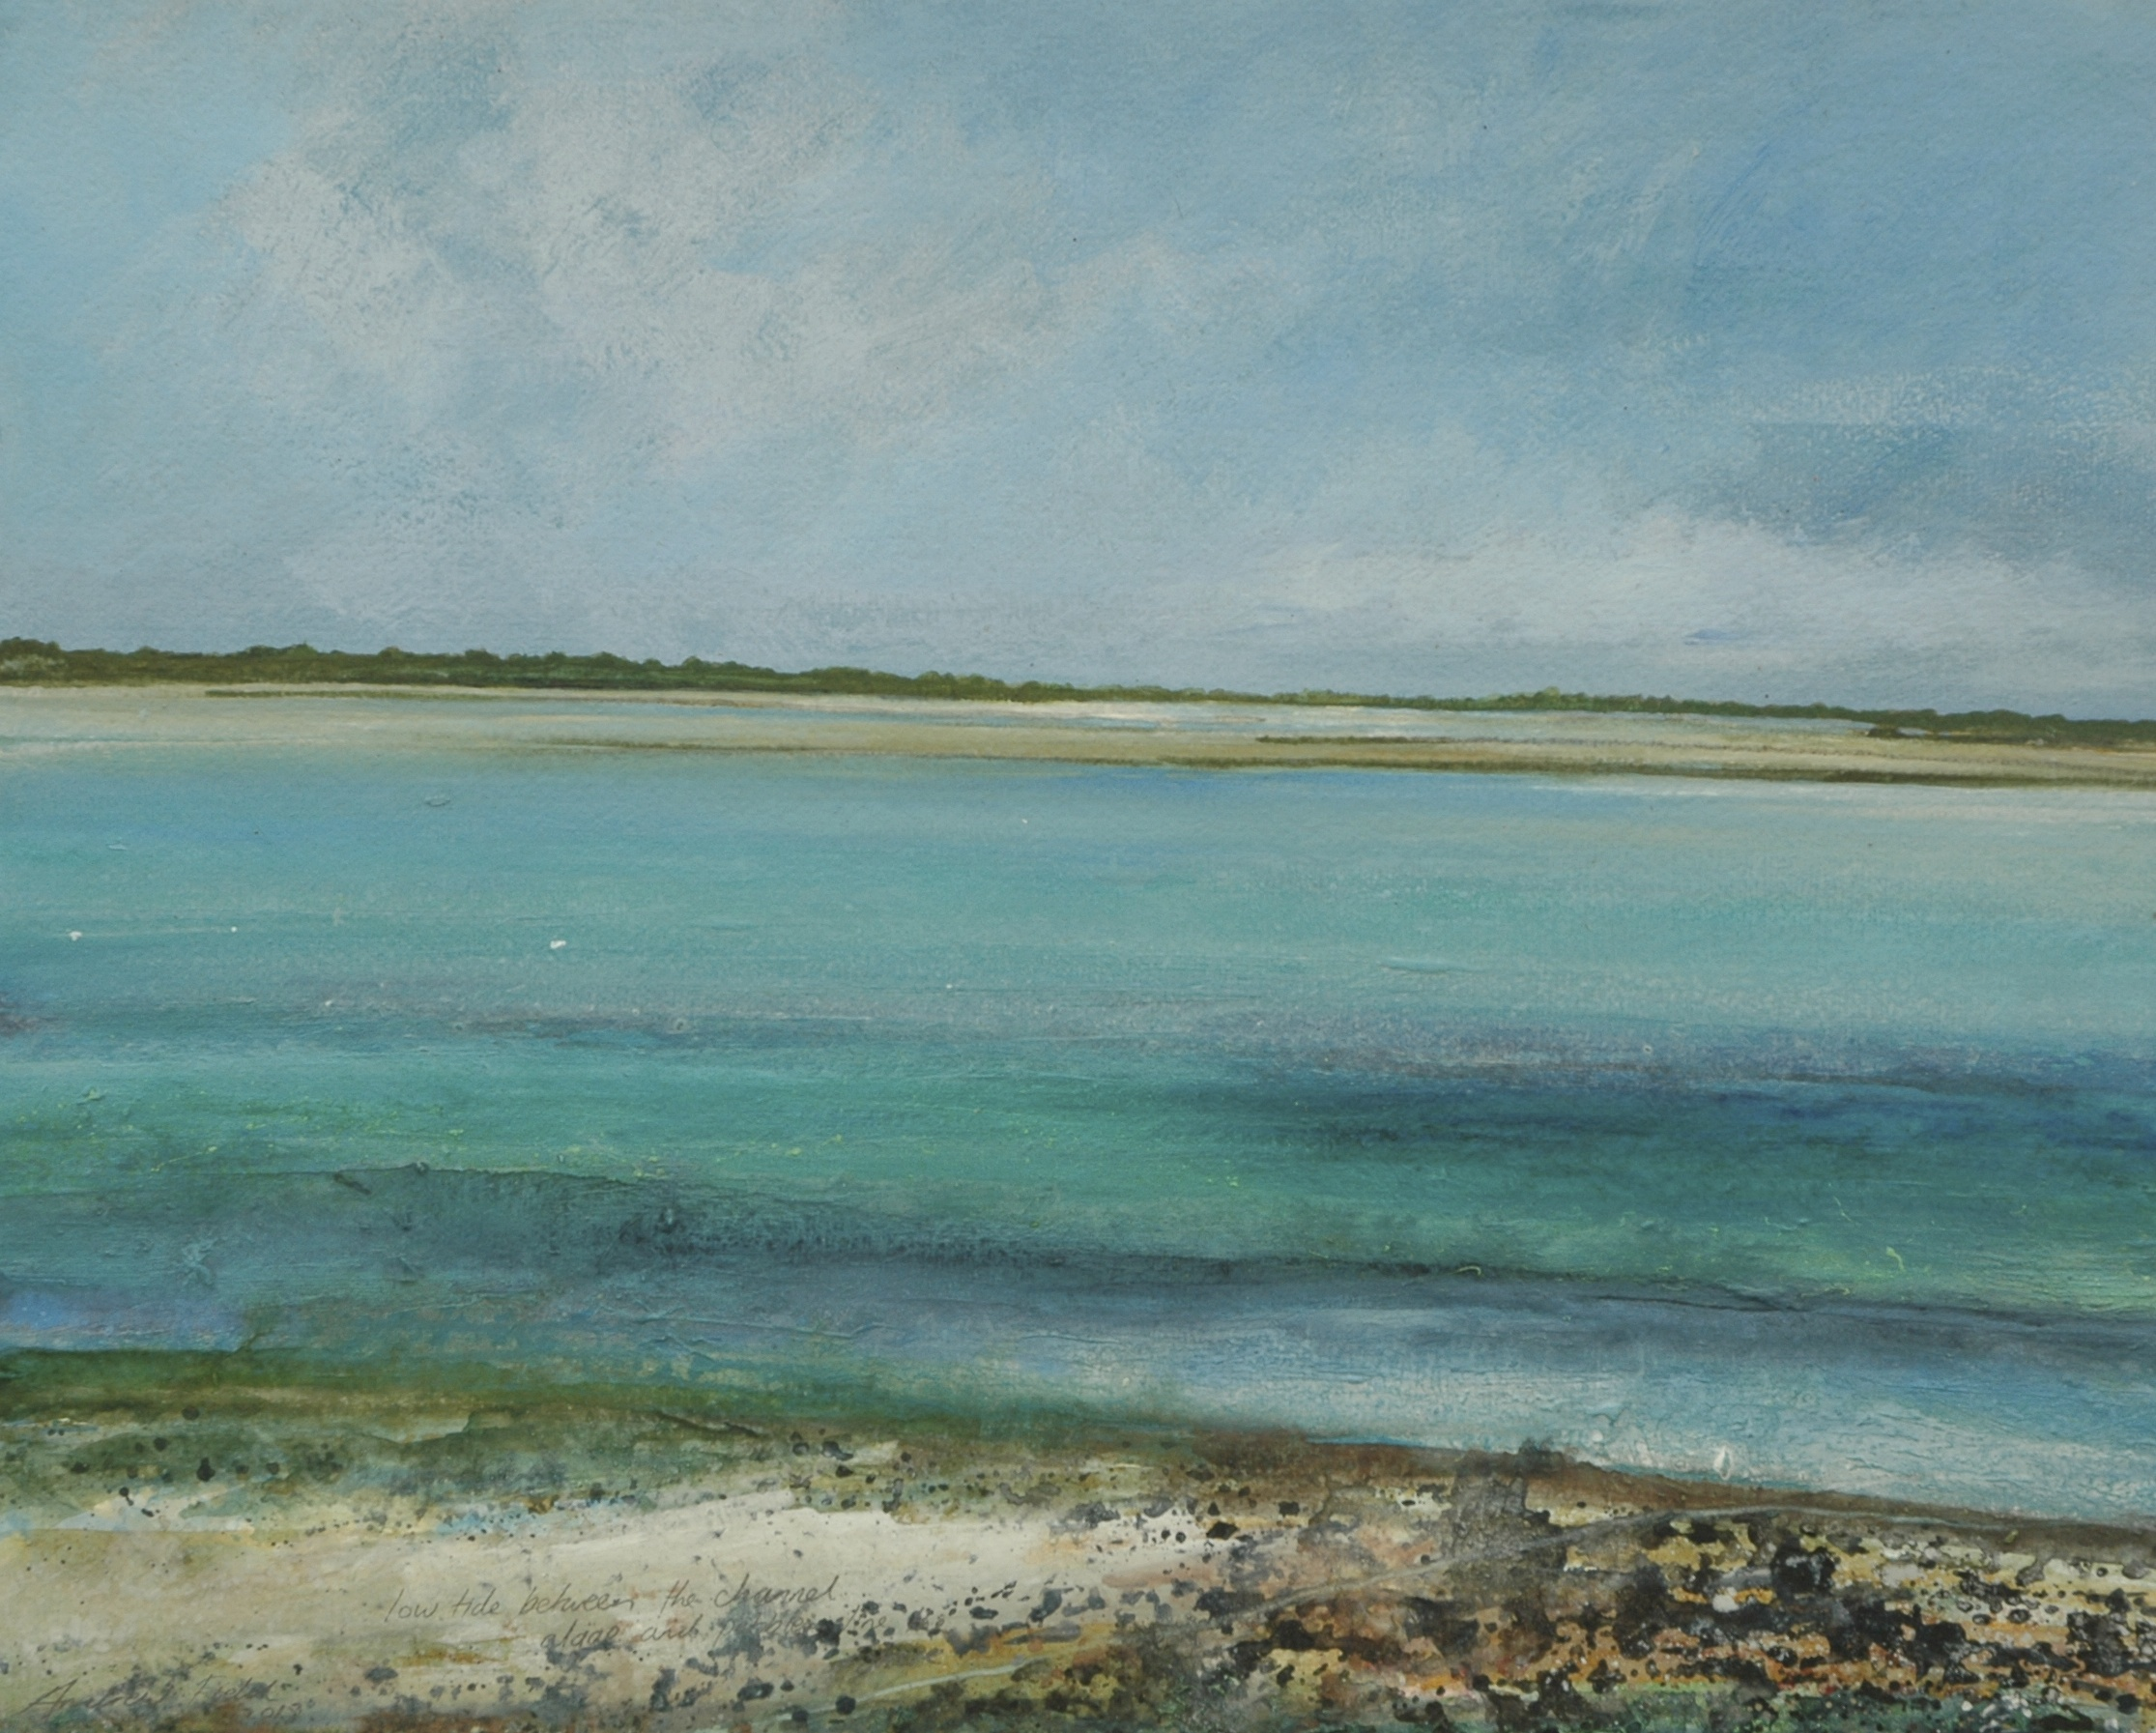 Low Tide Between The Channel, 2013